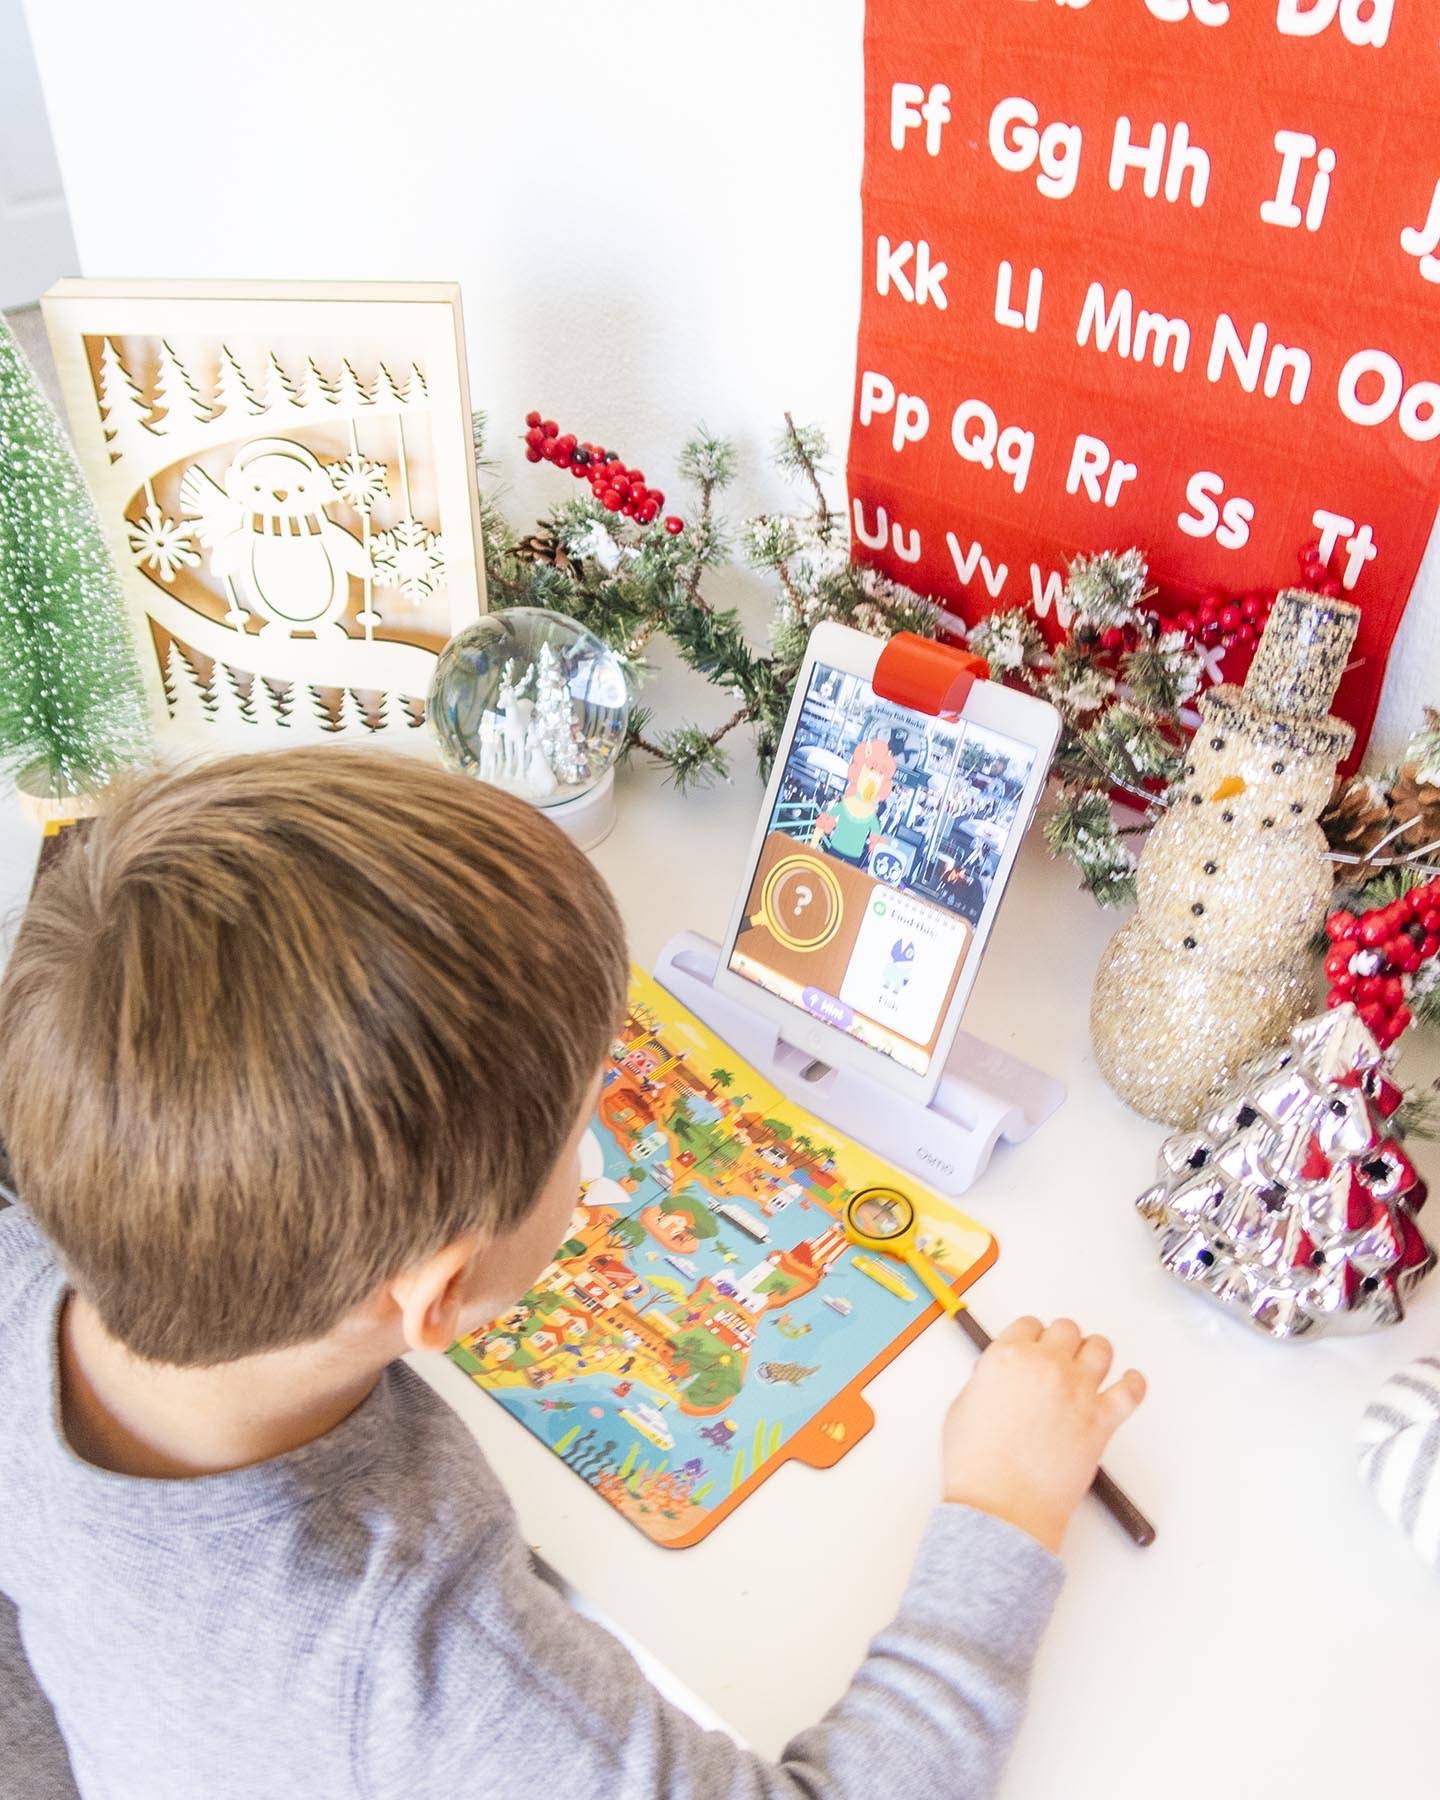 Educational Toys and Games for Preschool and Kindergarten Kids